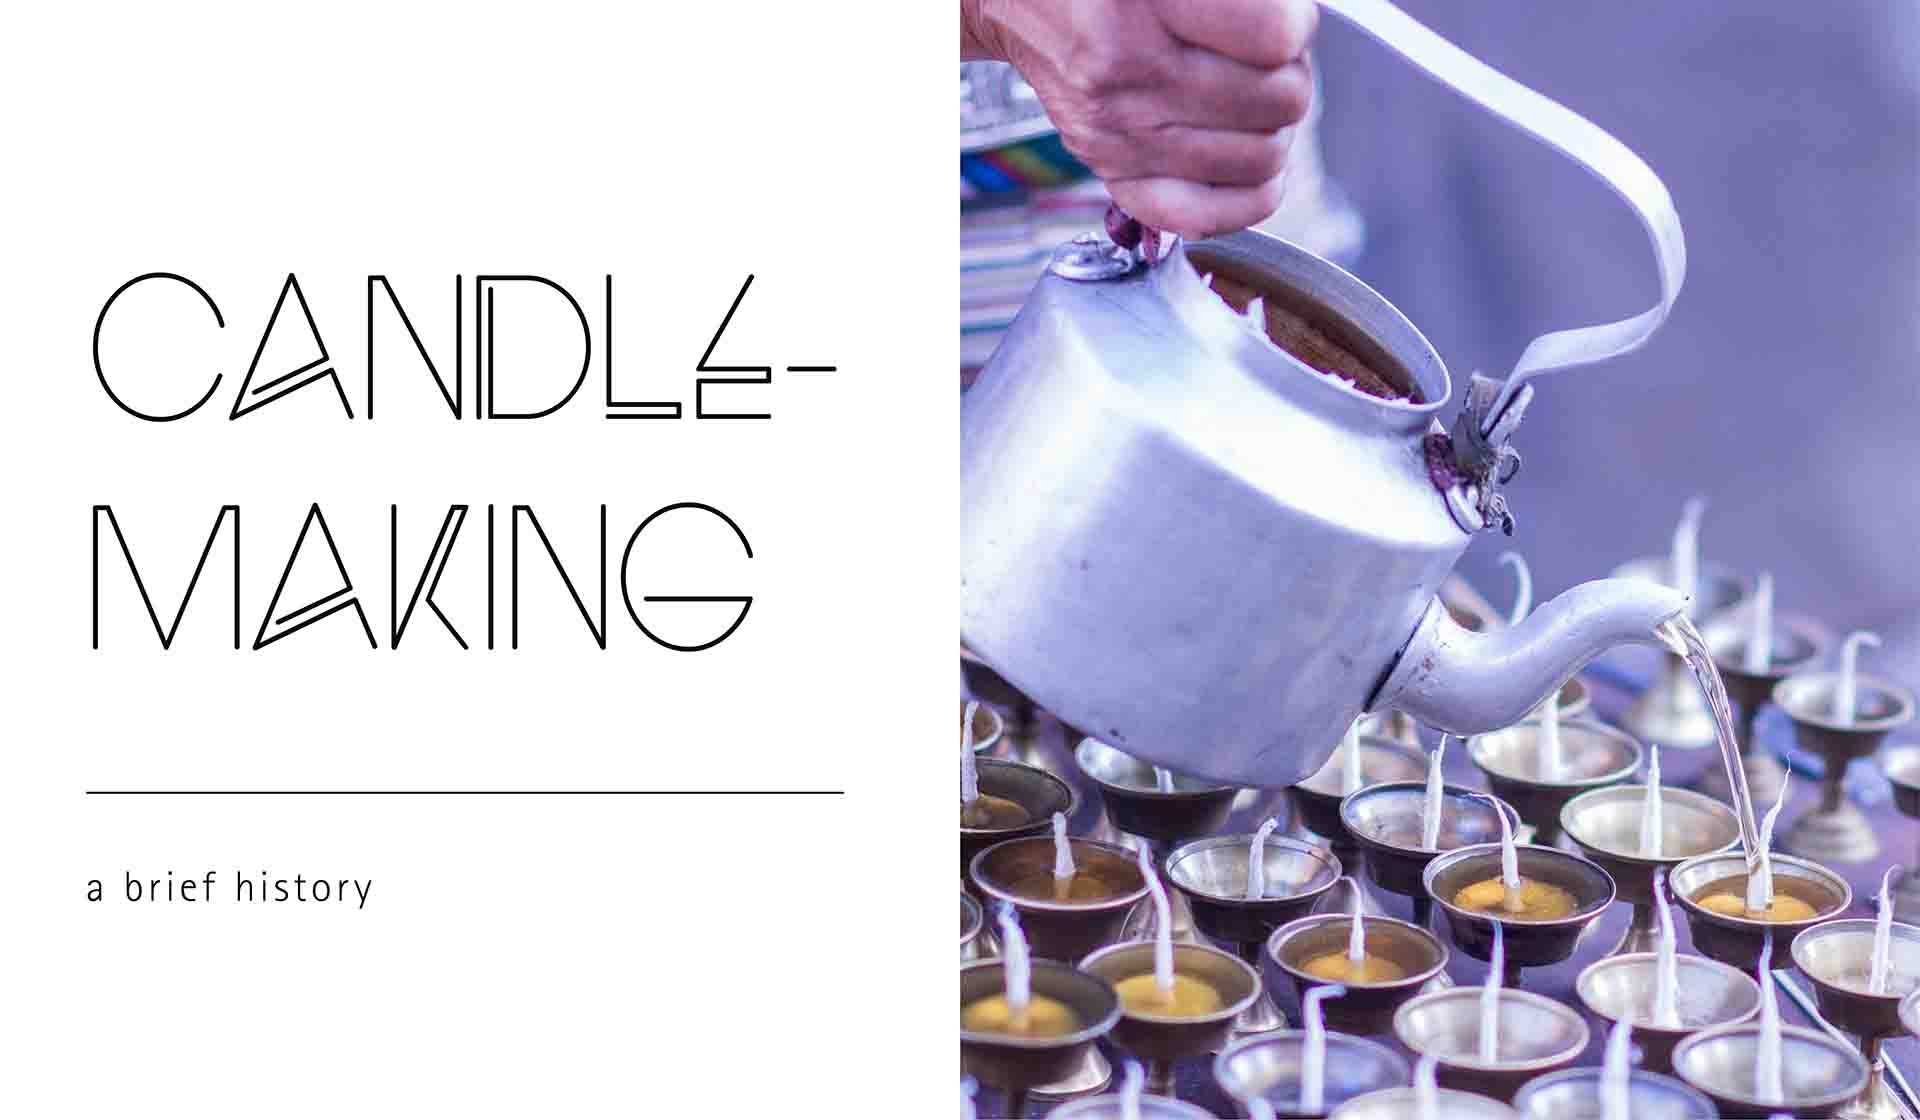 The History of Candle Making